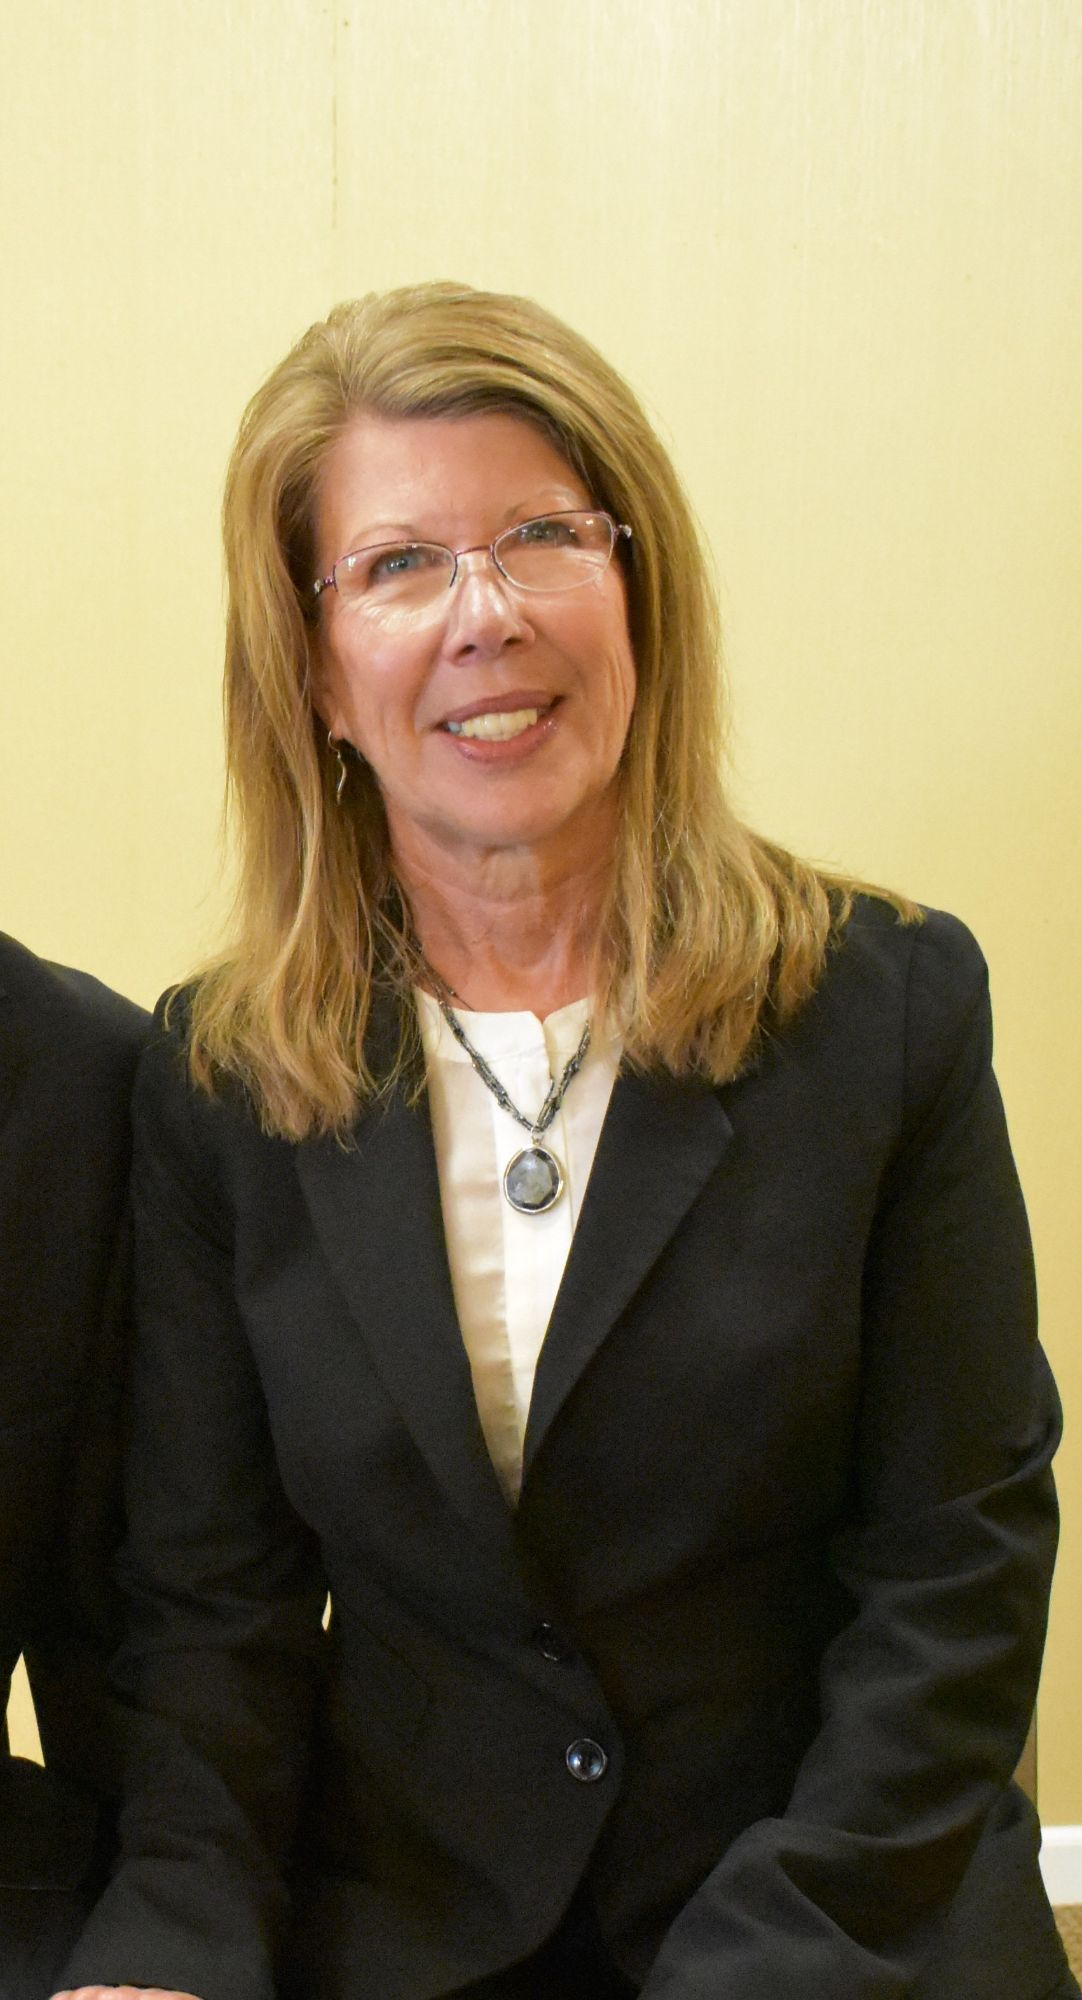 Photo of Sandy Armstrong - Co-Owner